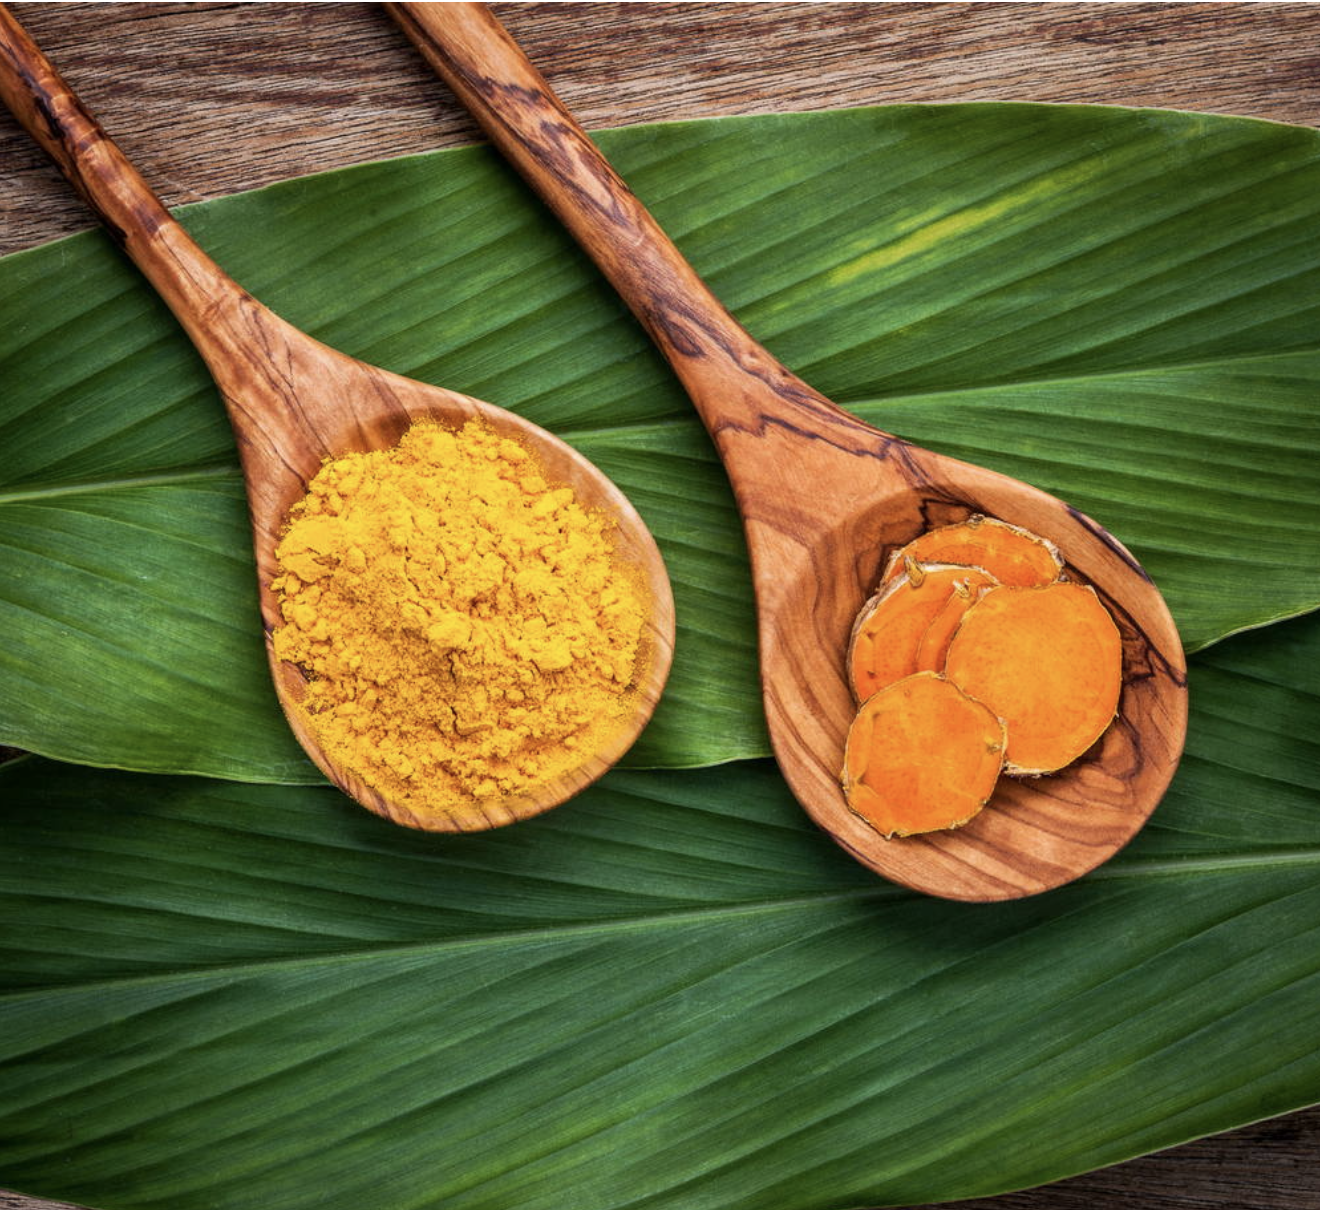 How to Use Turmeric To Improve Your Health -